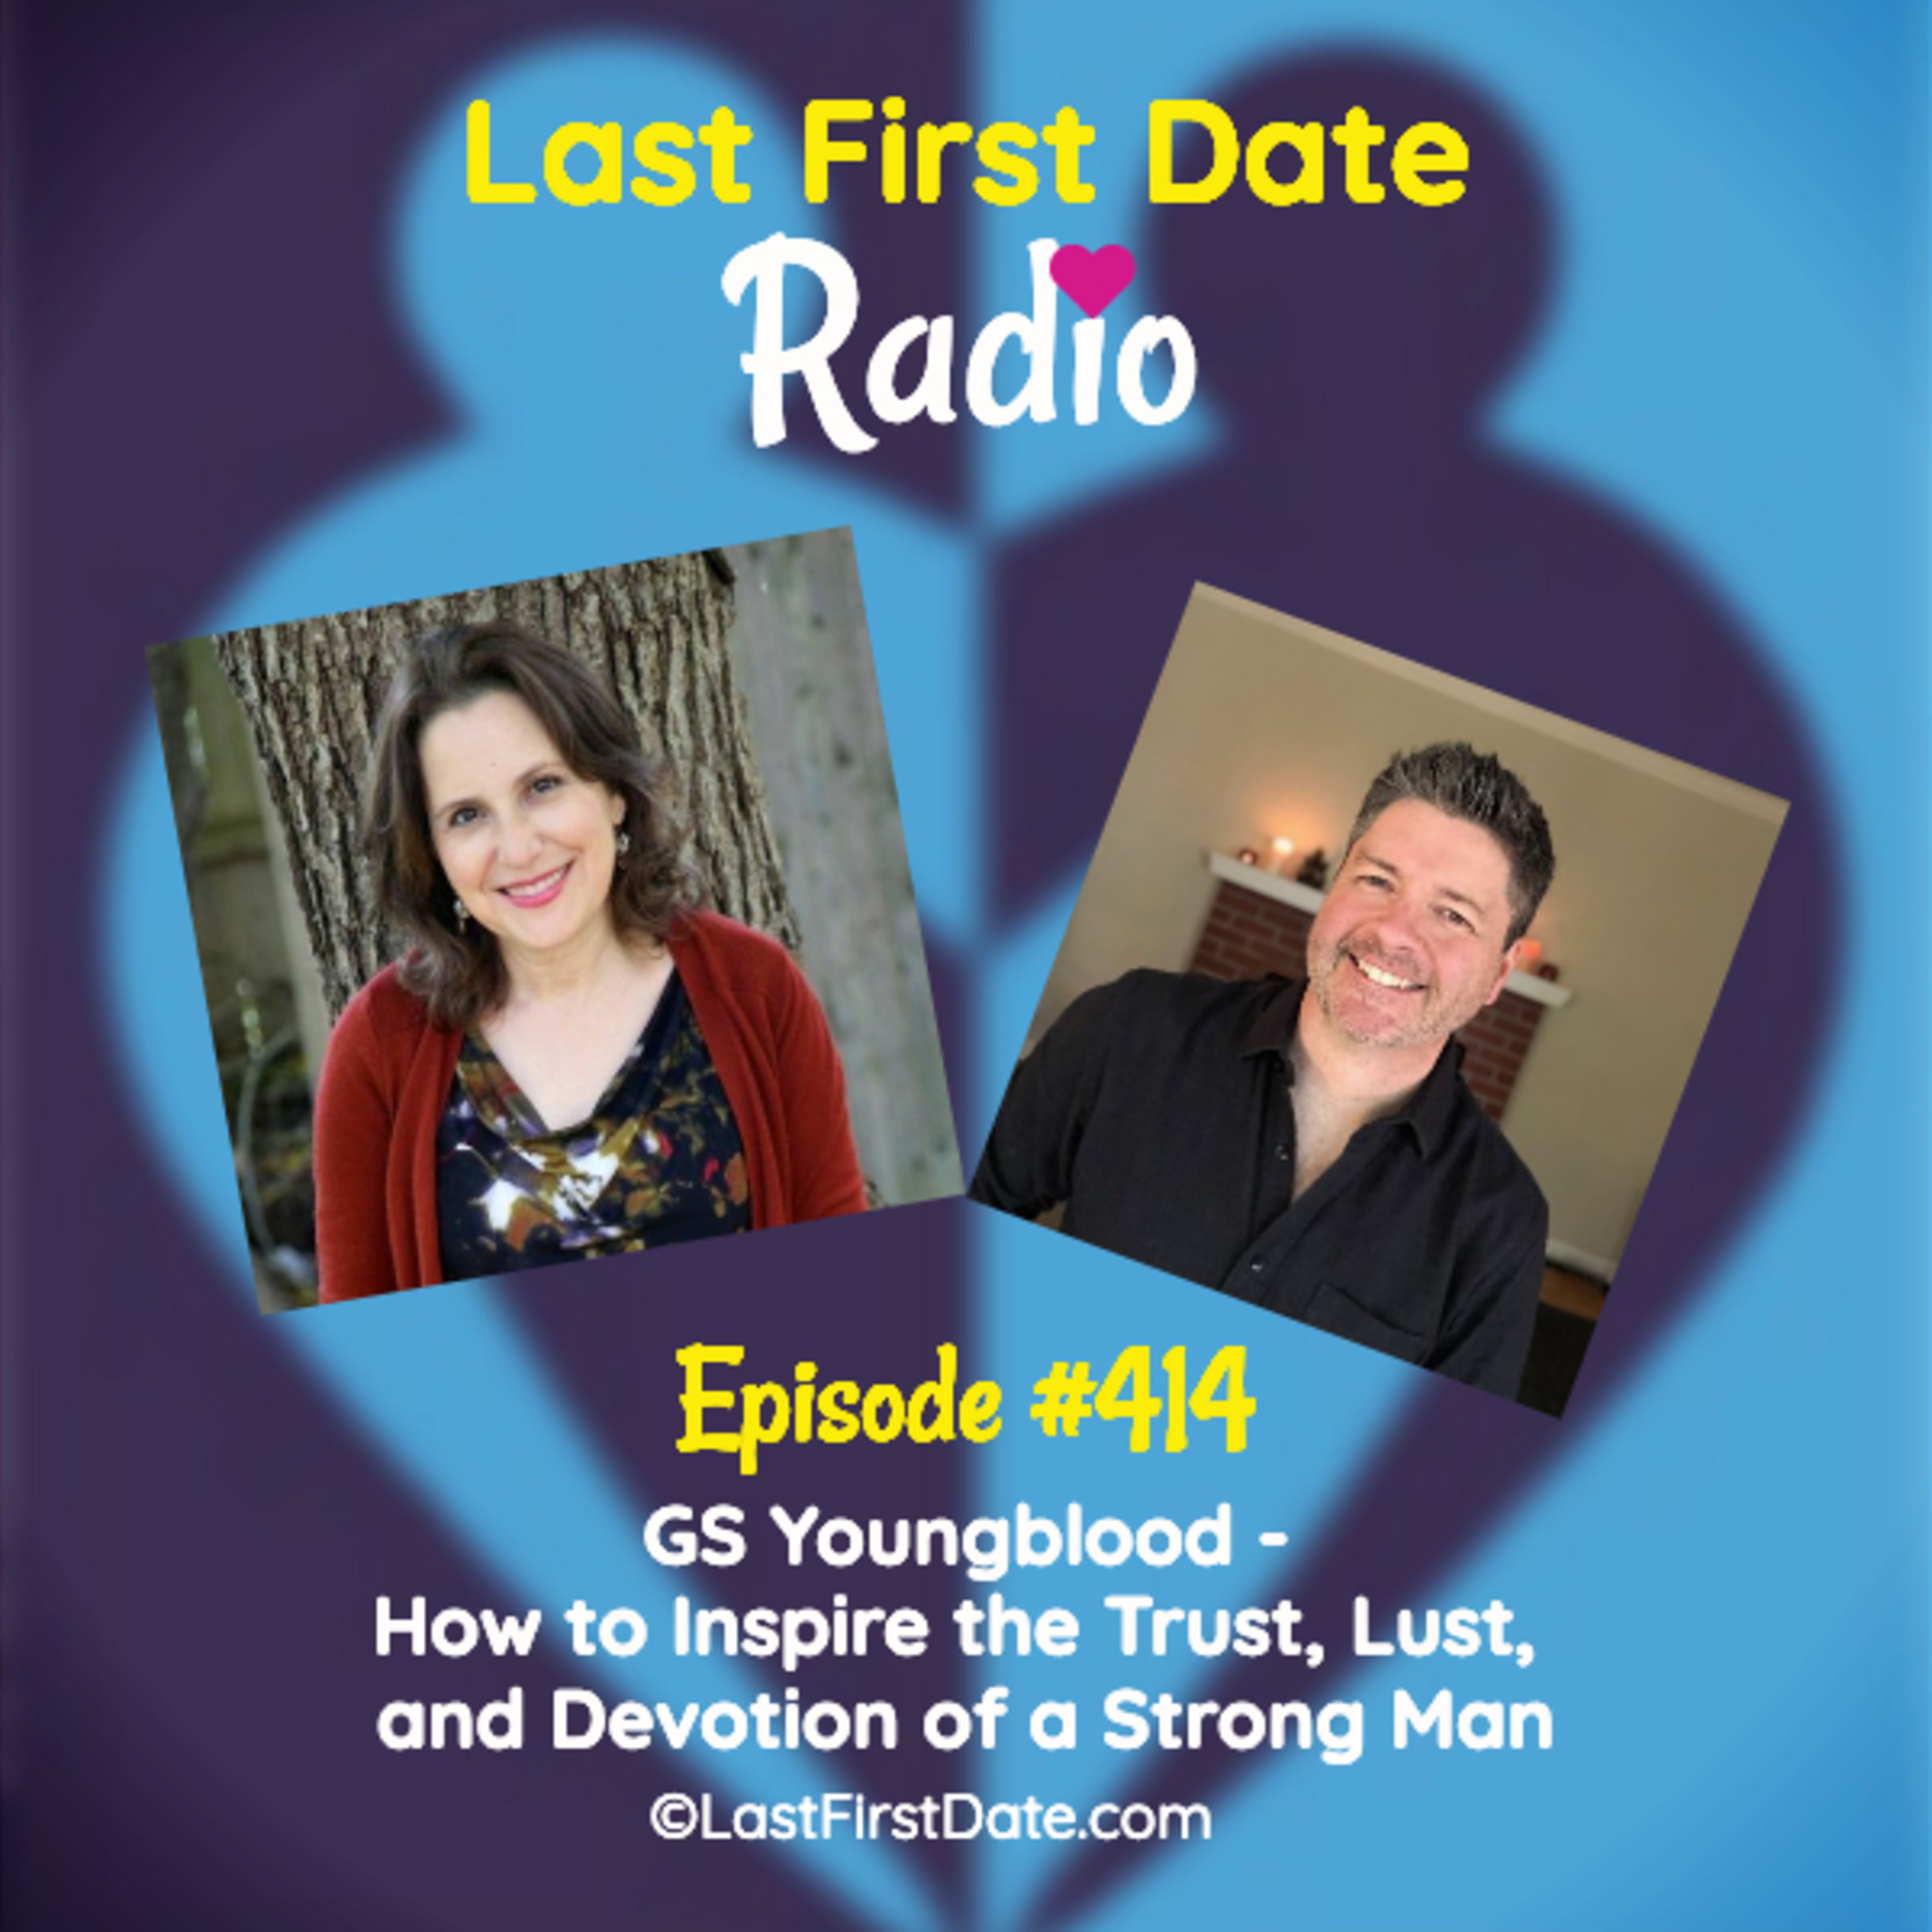 Last First Date Radio - EP 414: GS Youngblood - How to Inspire the Trust, Lust, and Devotion of a Strong Man